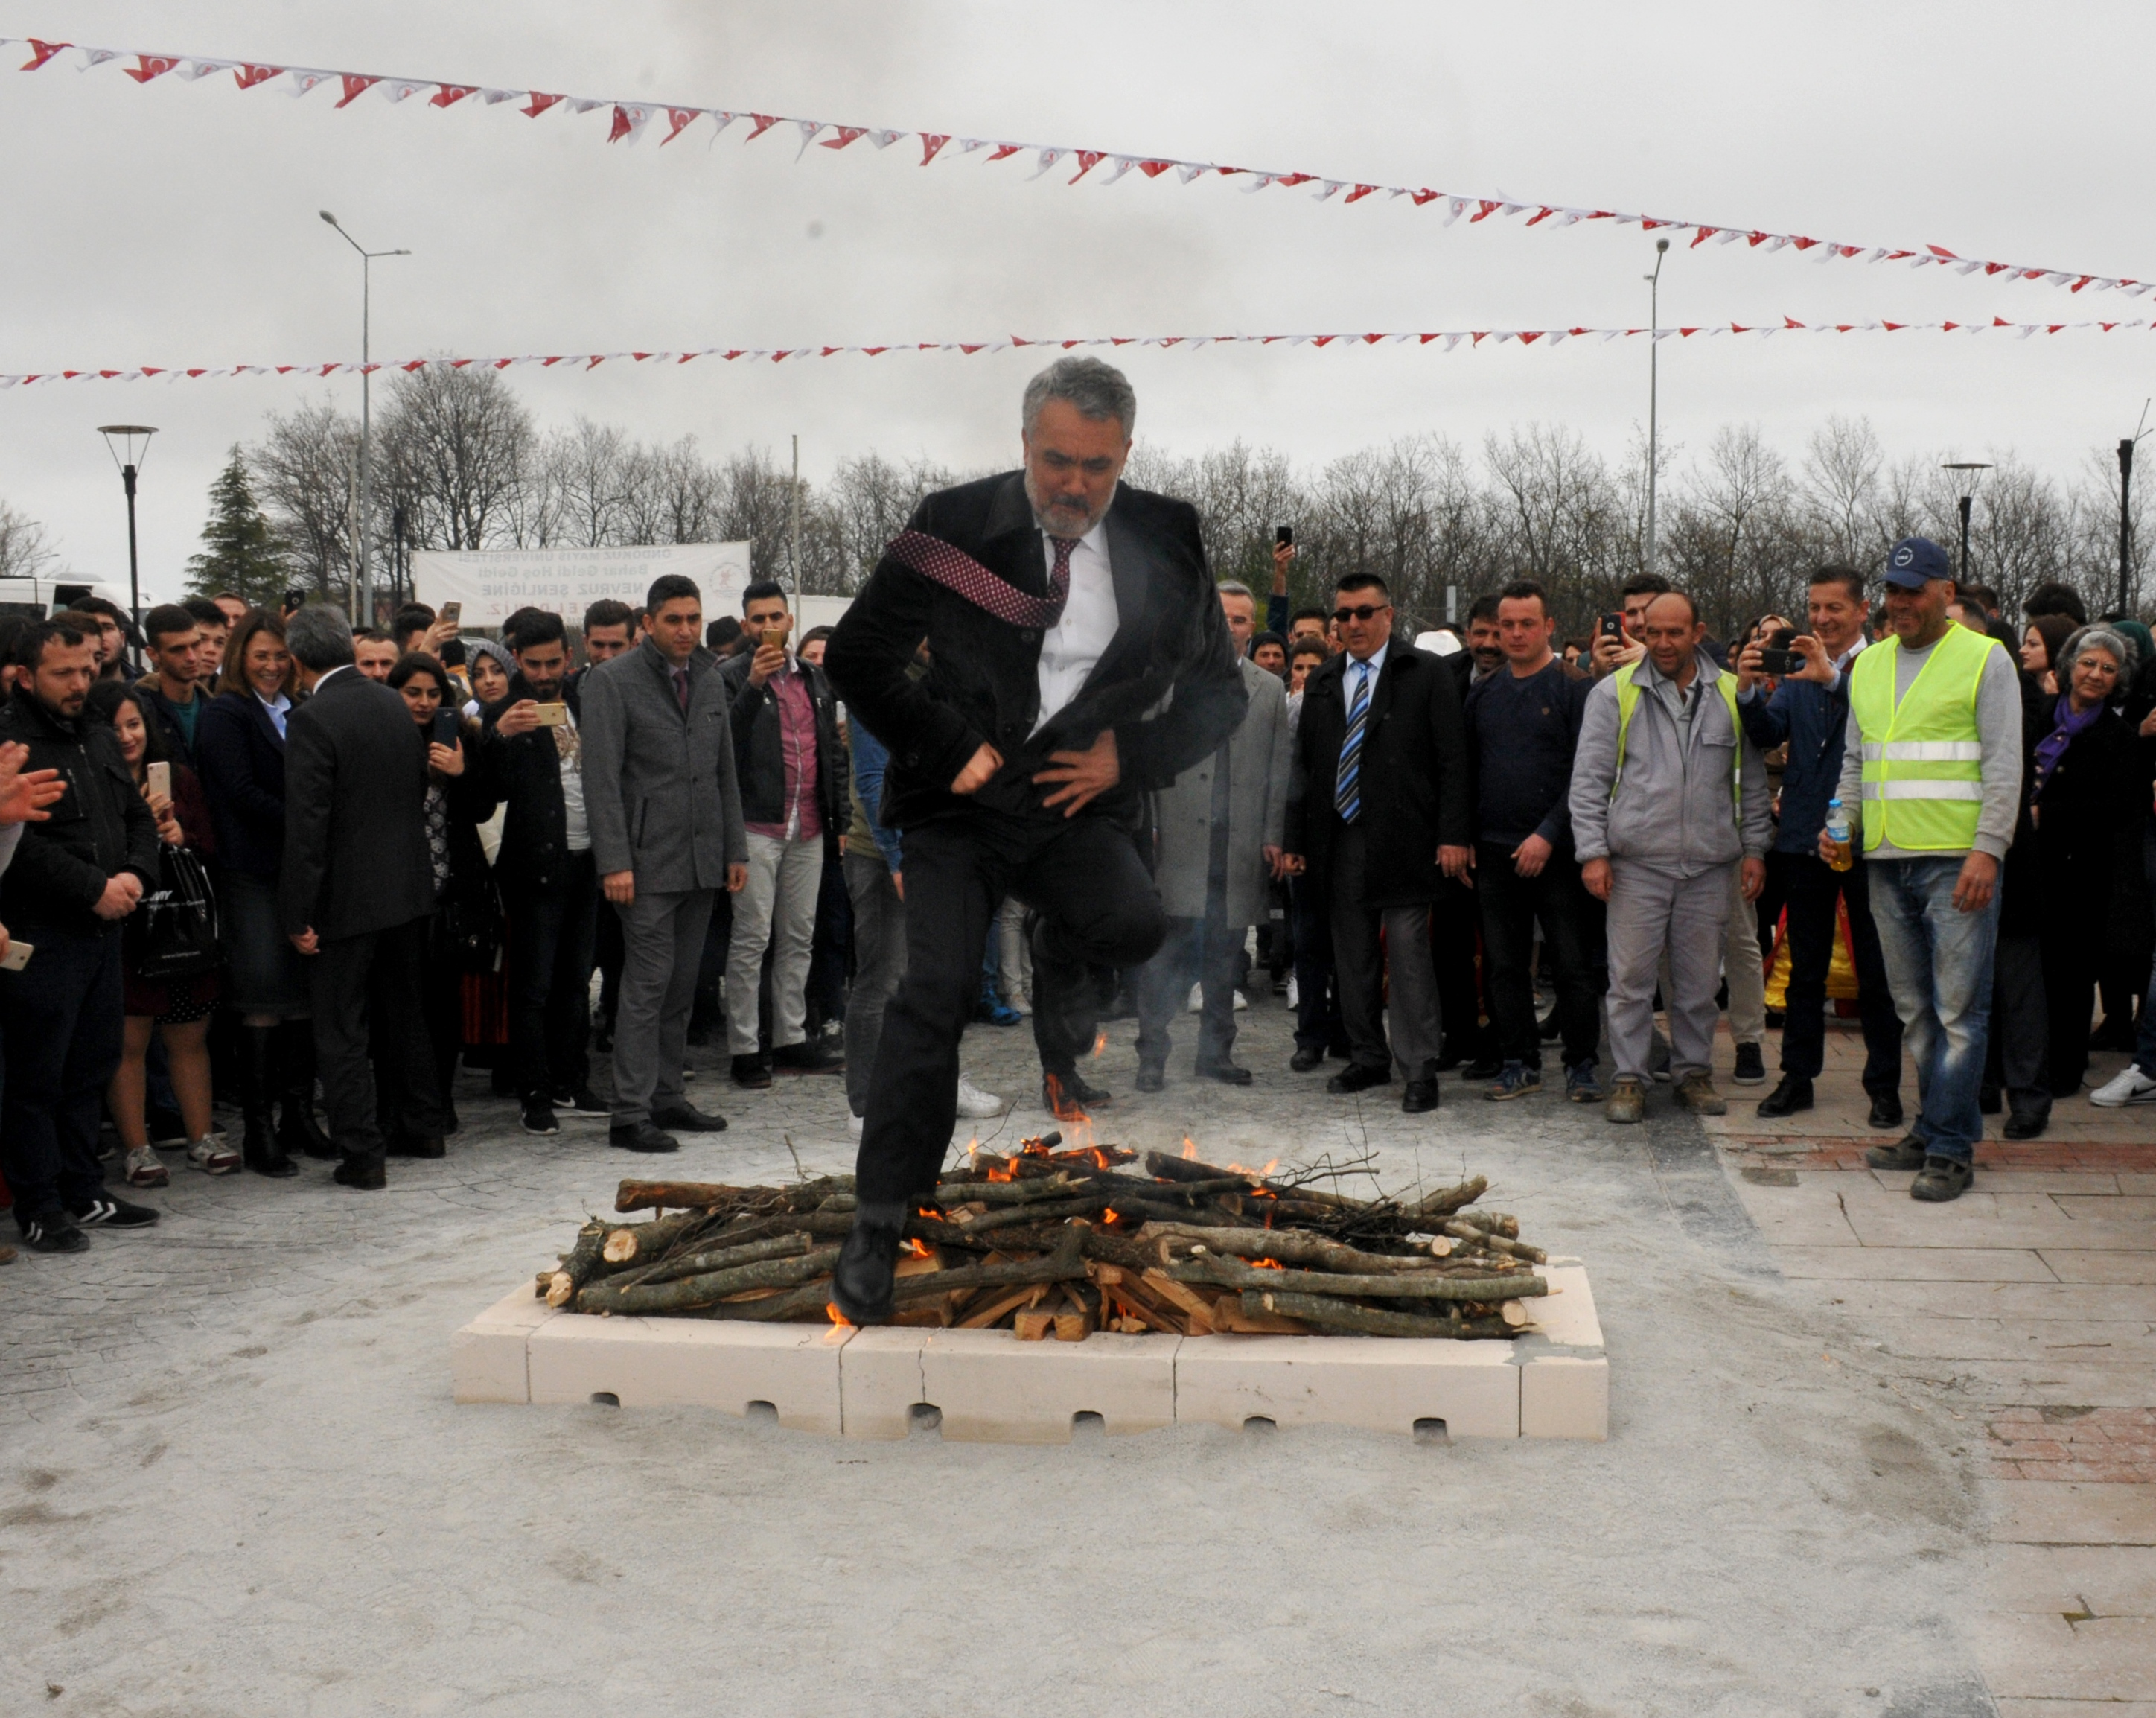 http://www.omu.edu.tr/sites/default/files/files/omu_family_enthusiastically_celebrated_newroz/dsc_0250.jpg